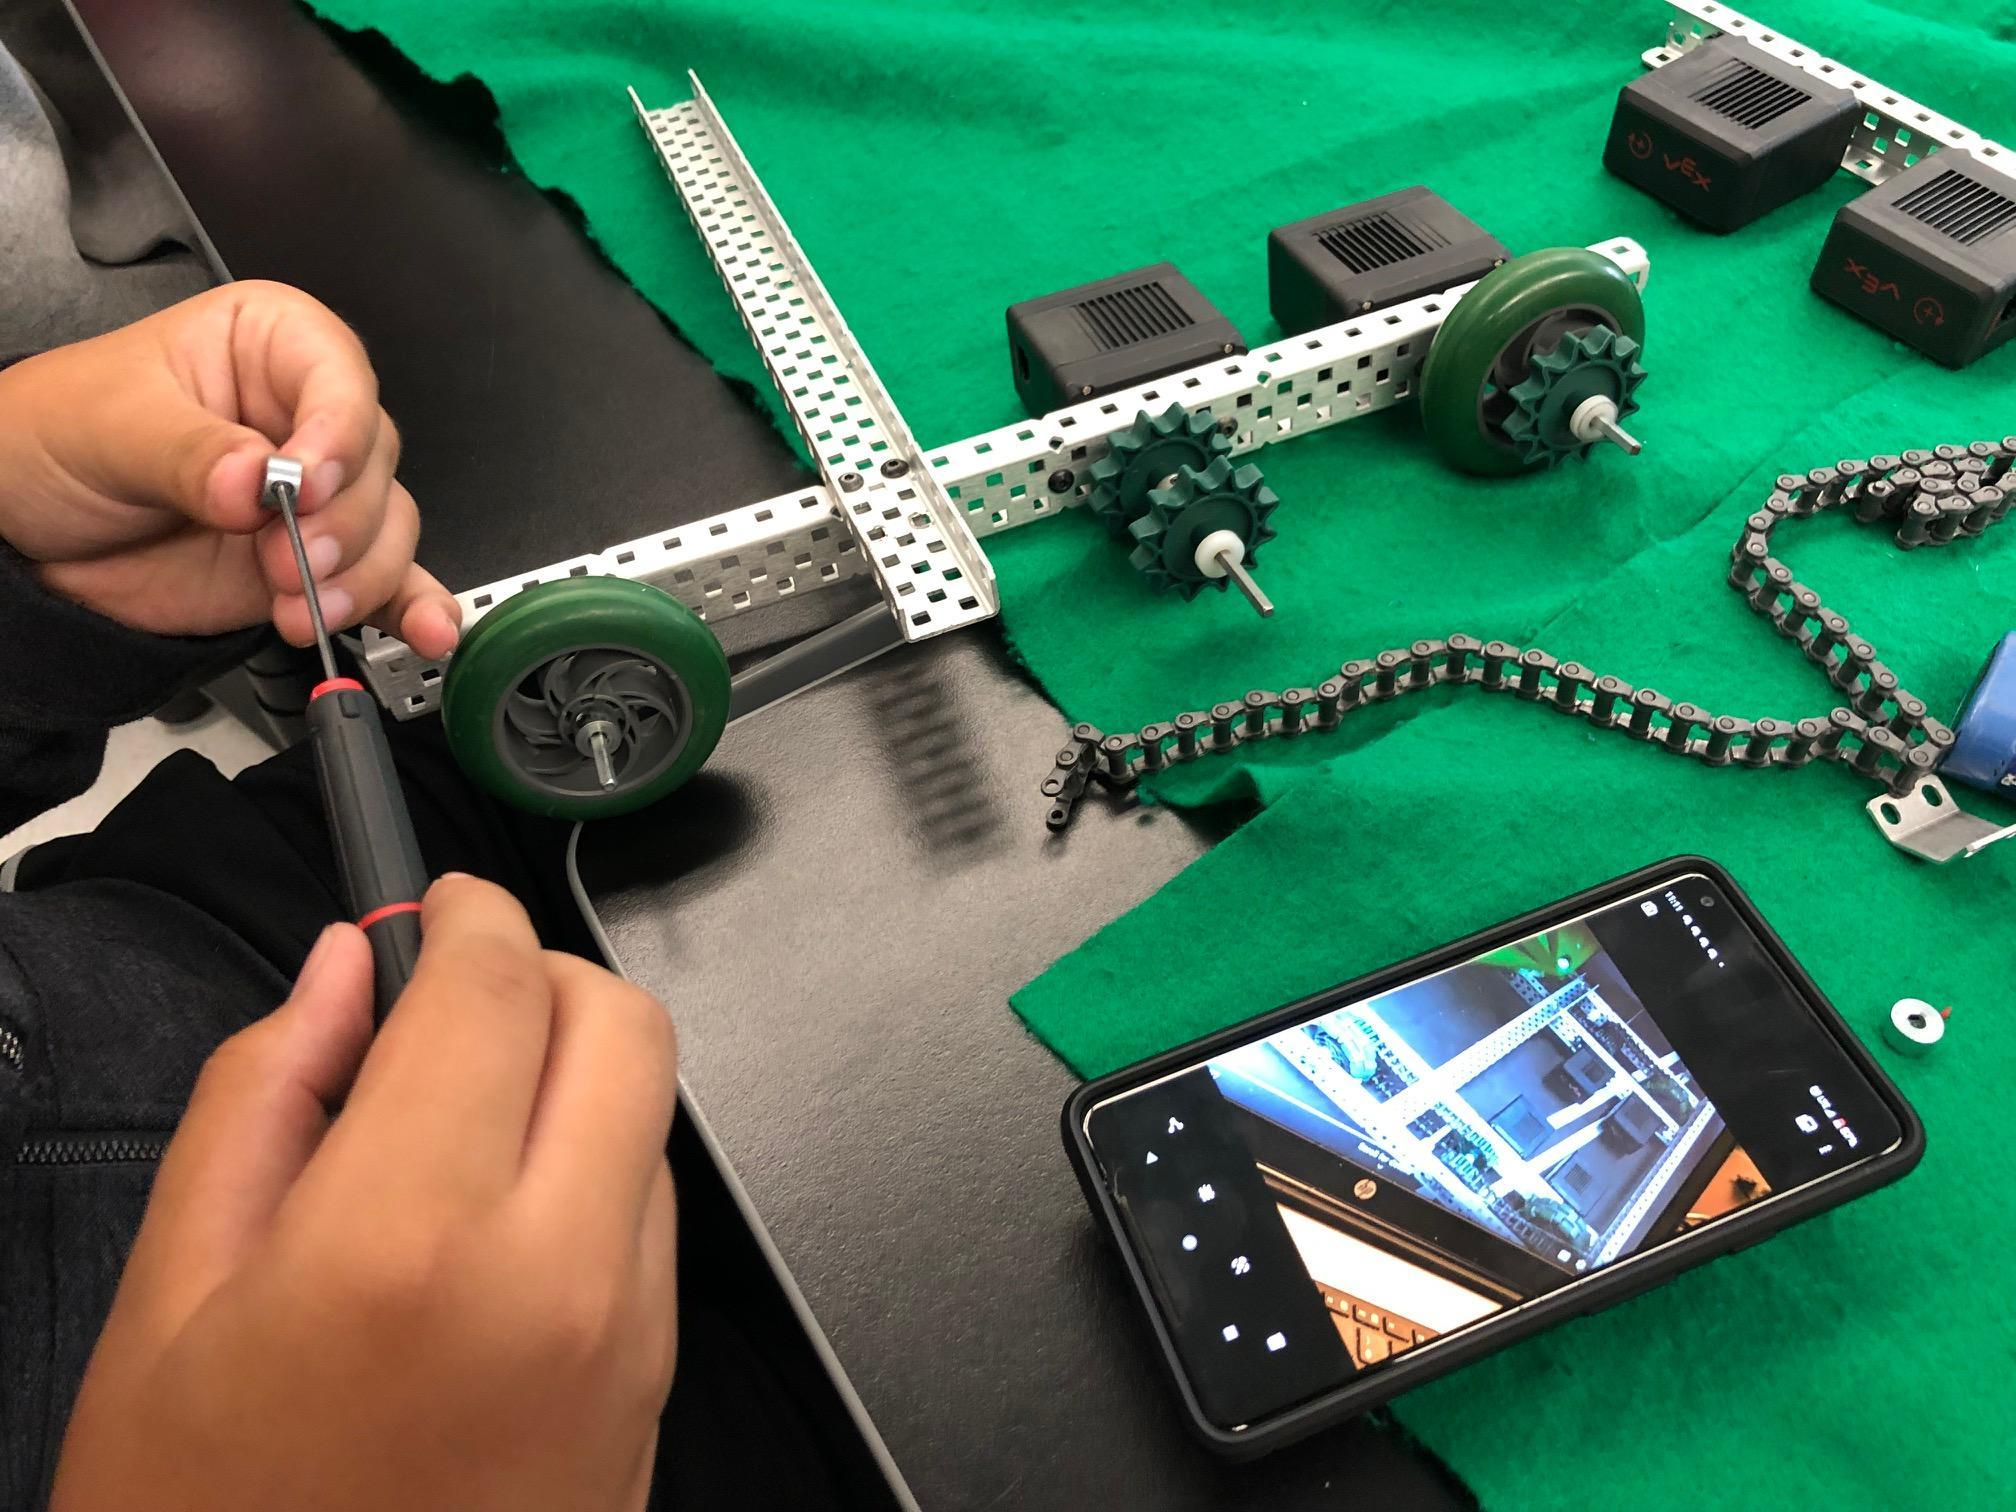 2019 2020 Vex Robotics Competition Tower Takeover Project Lead The Way Pltw Jerry D Holland Middle School Play your favorite online hearts game at vip games! 2019 2020 vex robotics competition